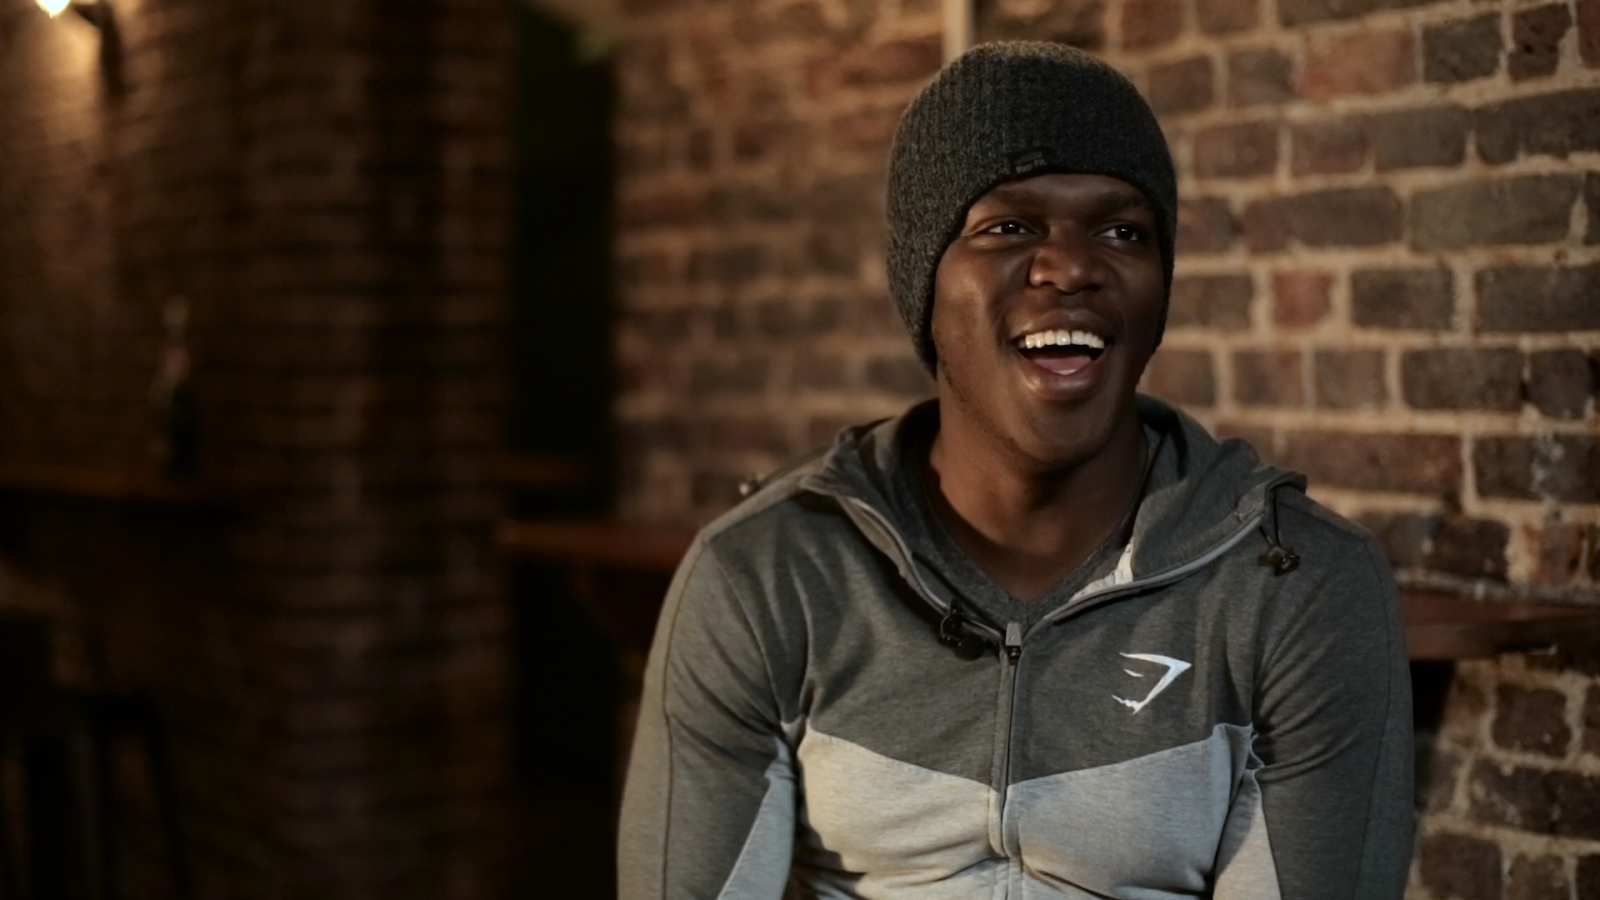 KSI interview